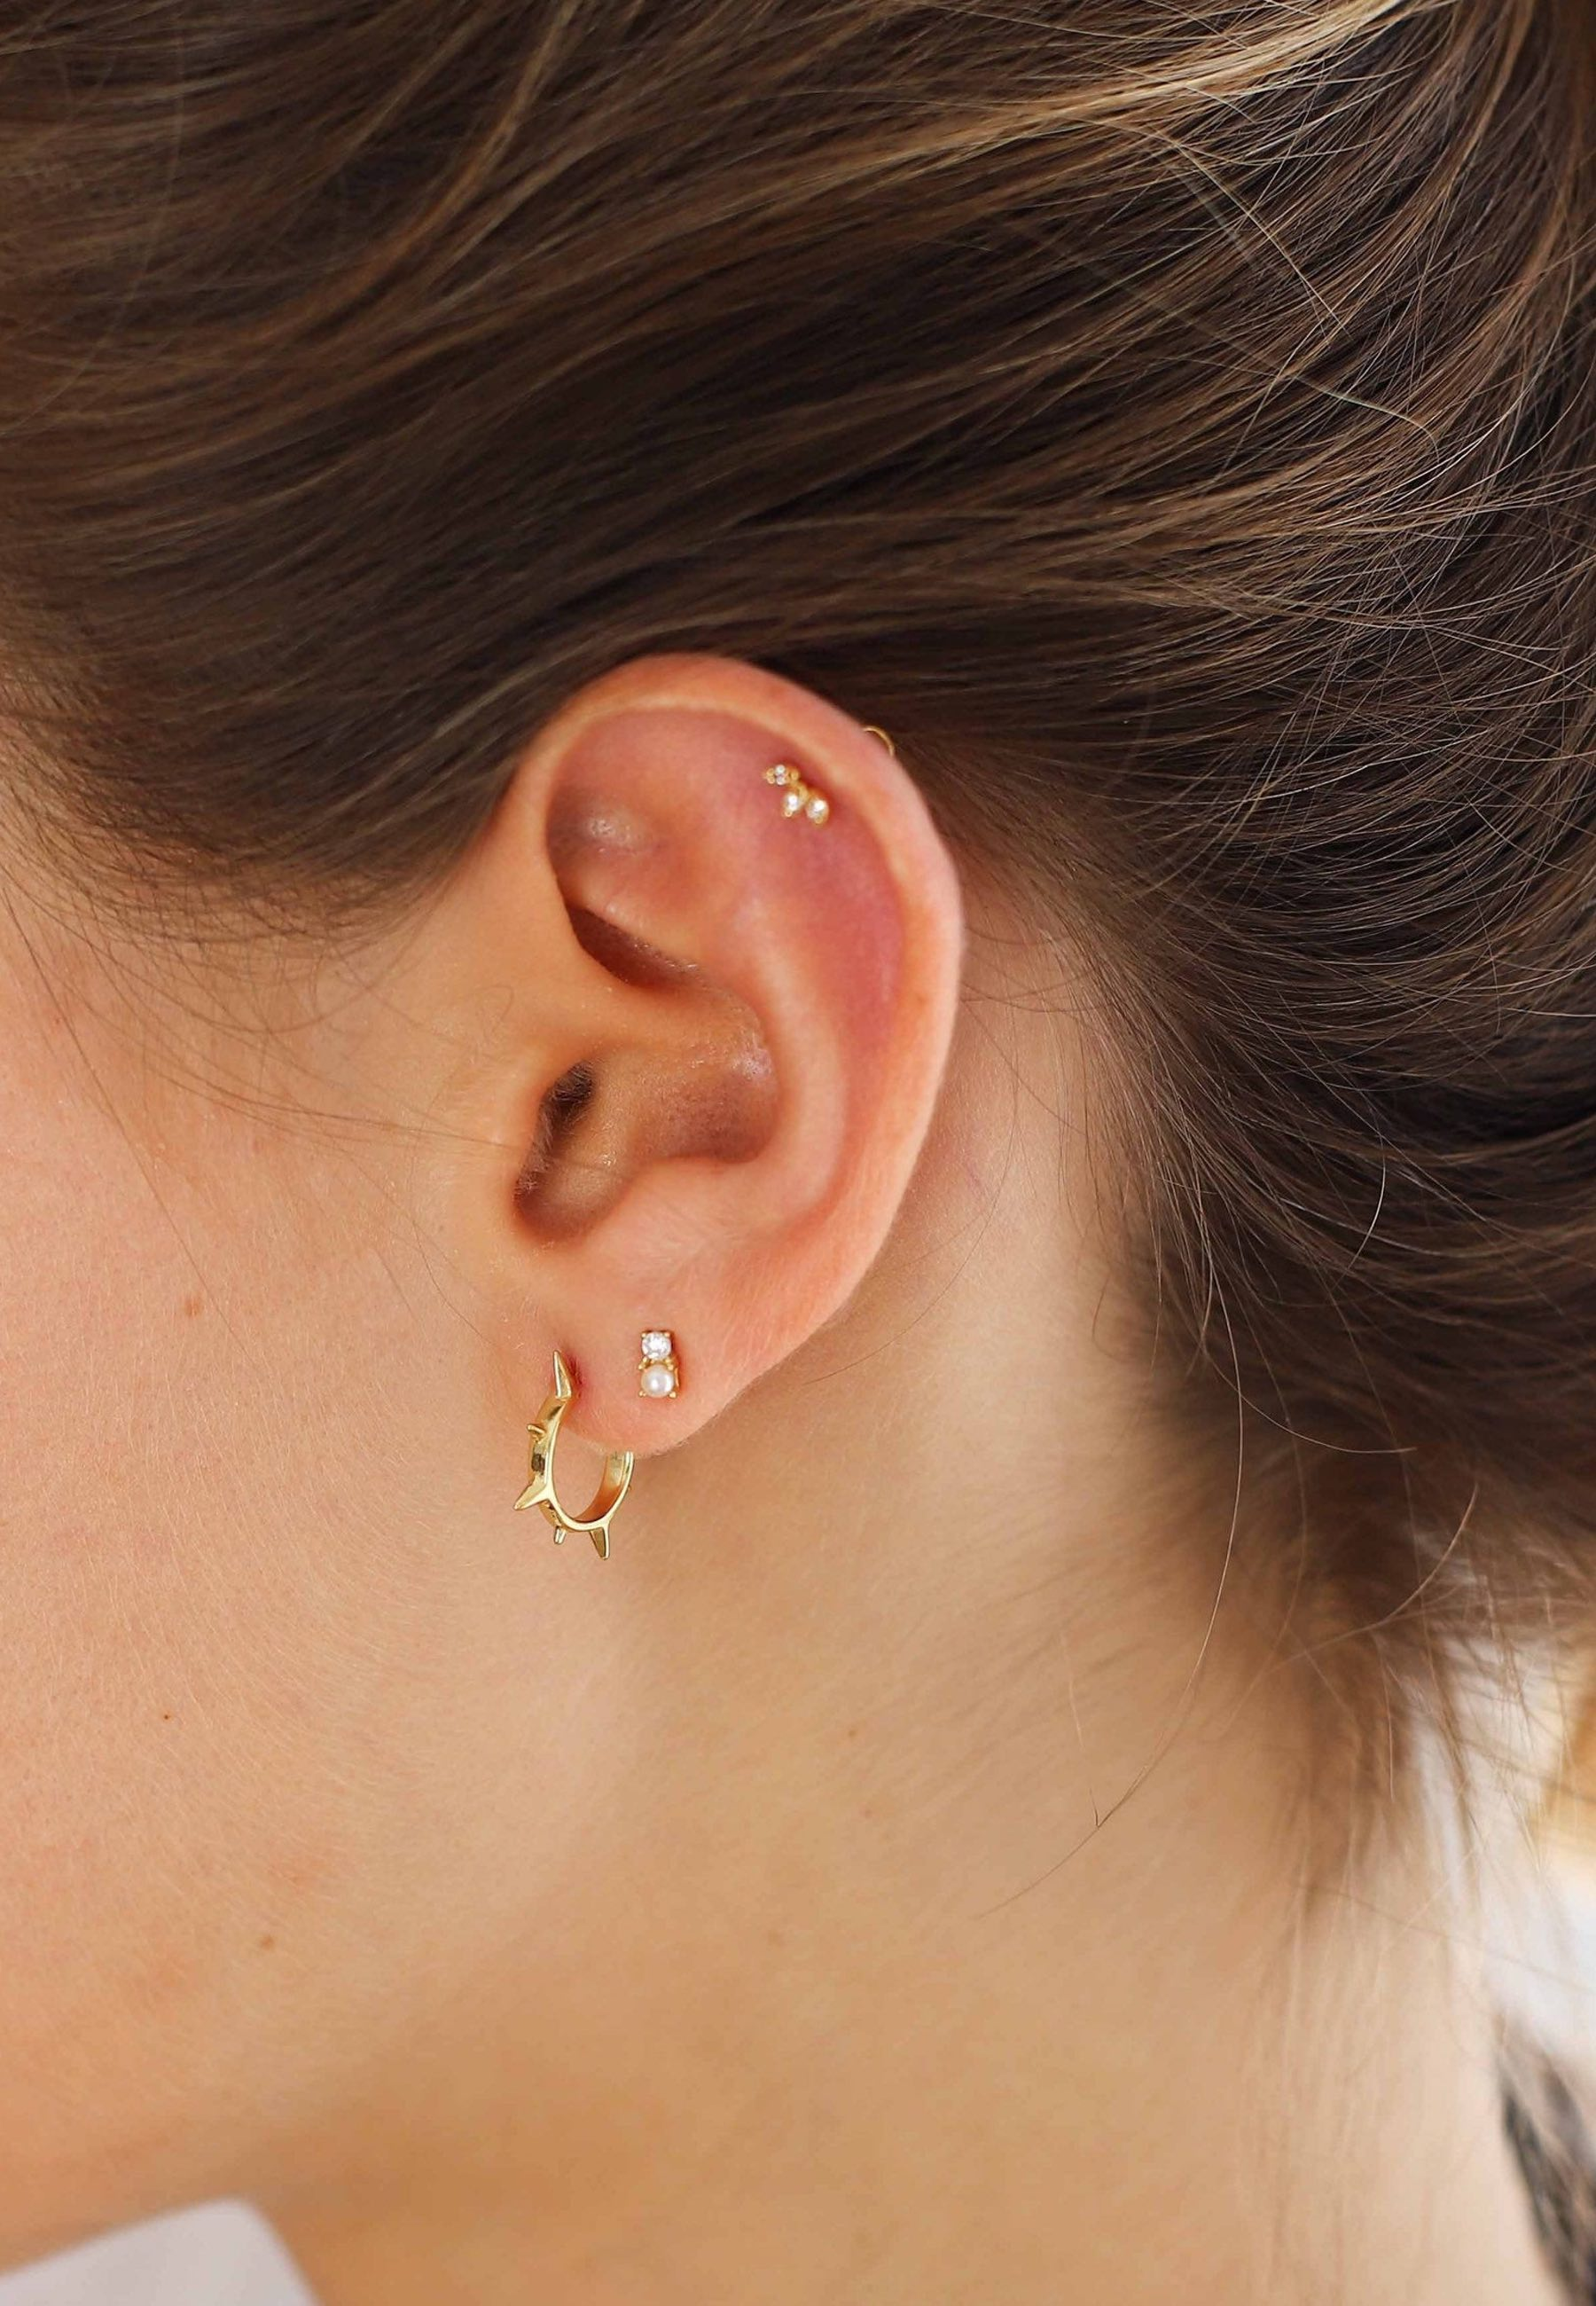 PINXUS gold earrings